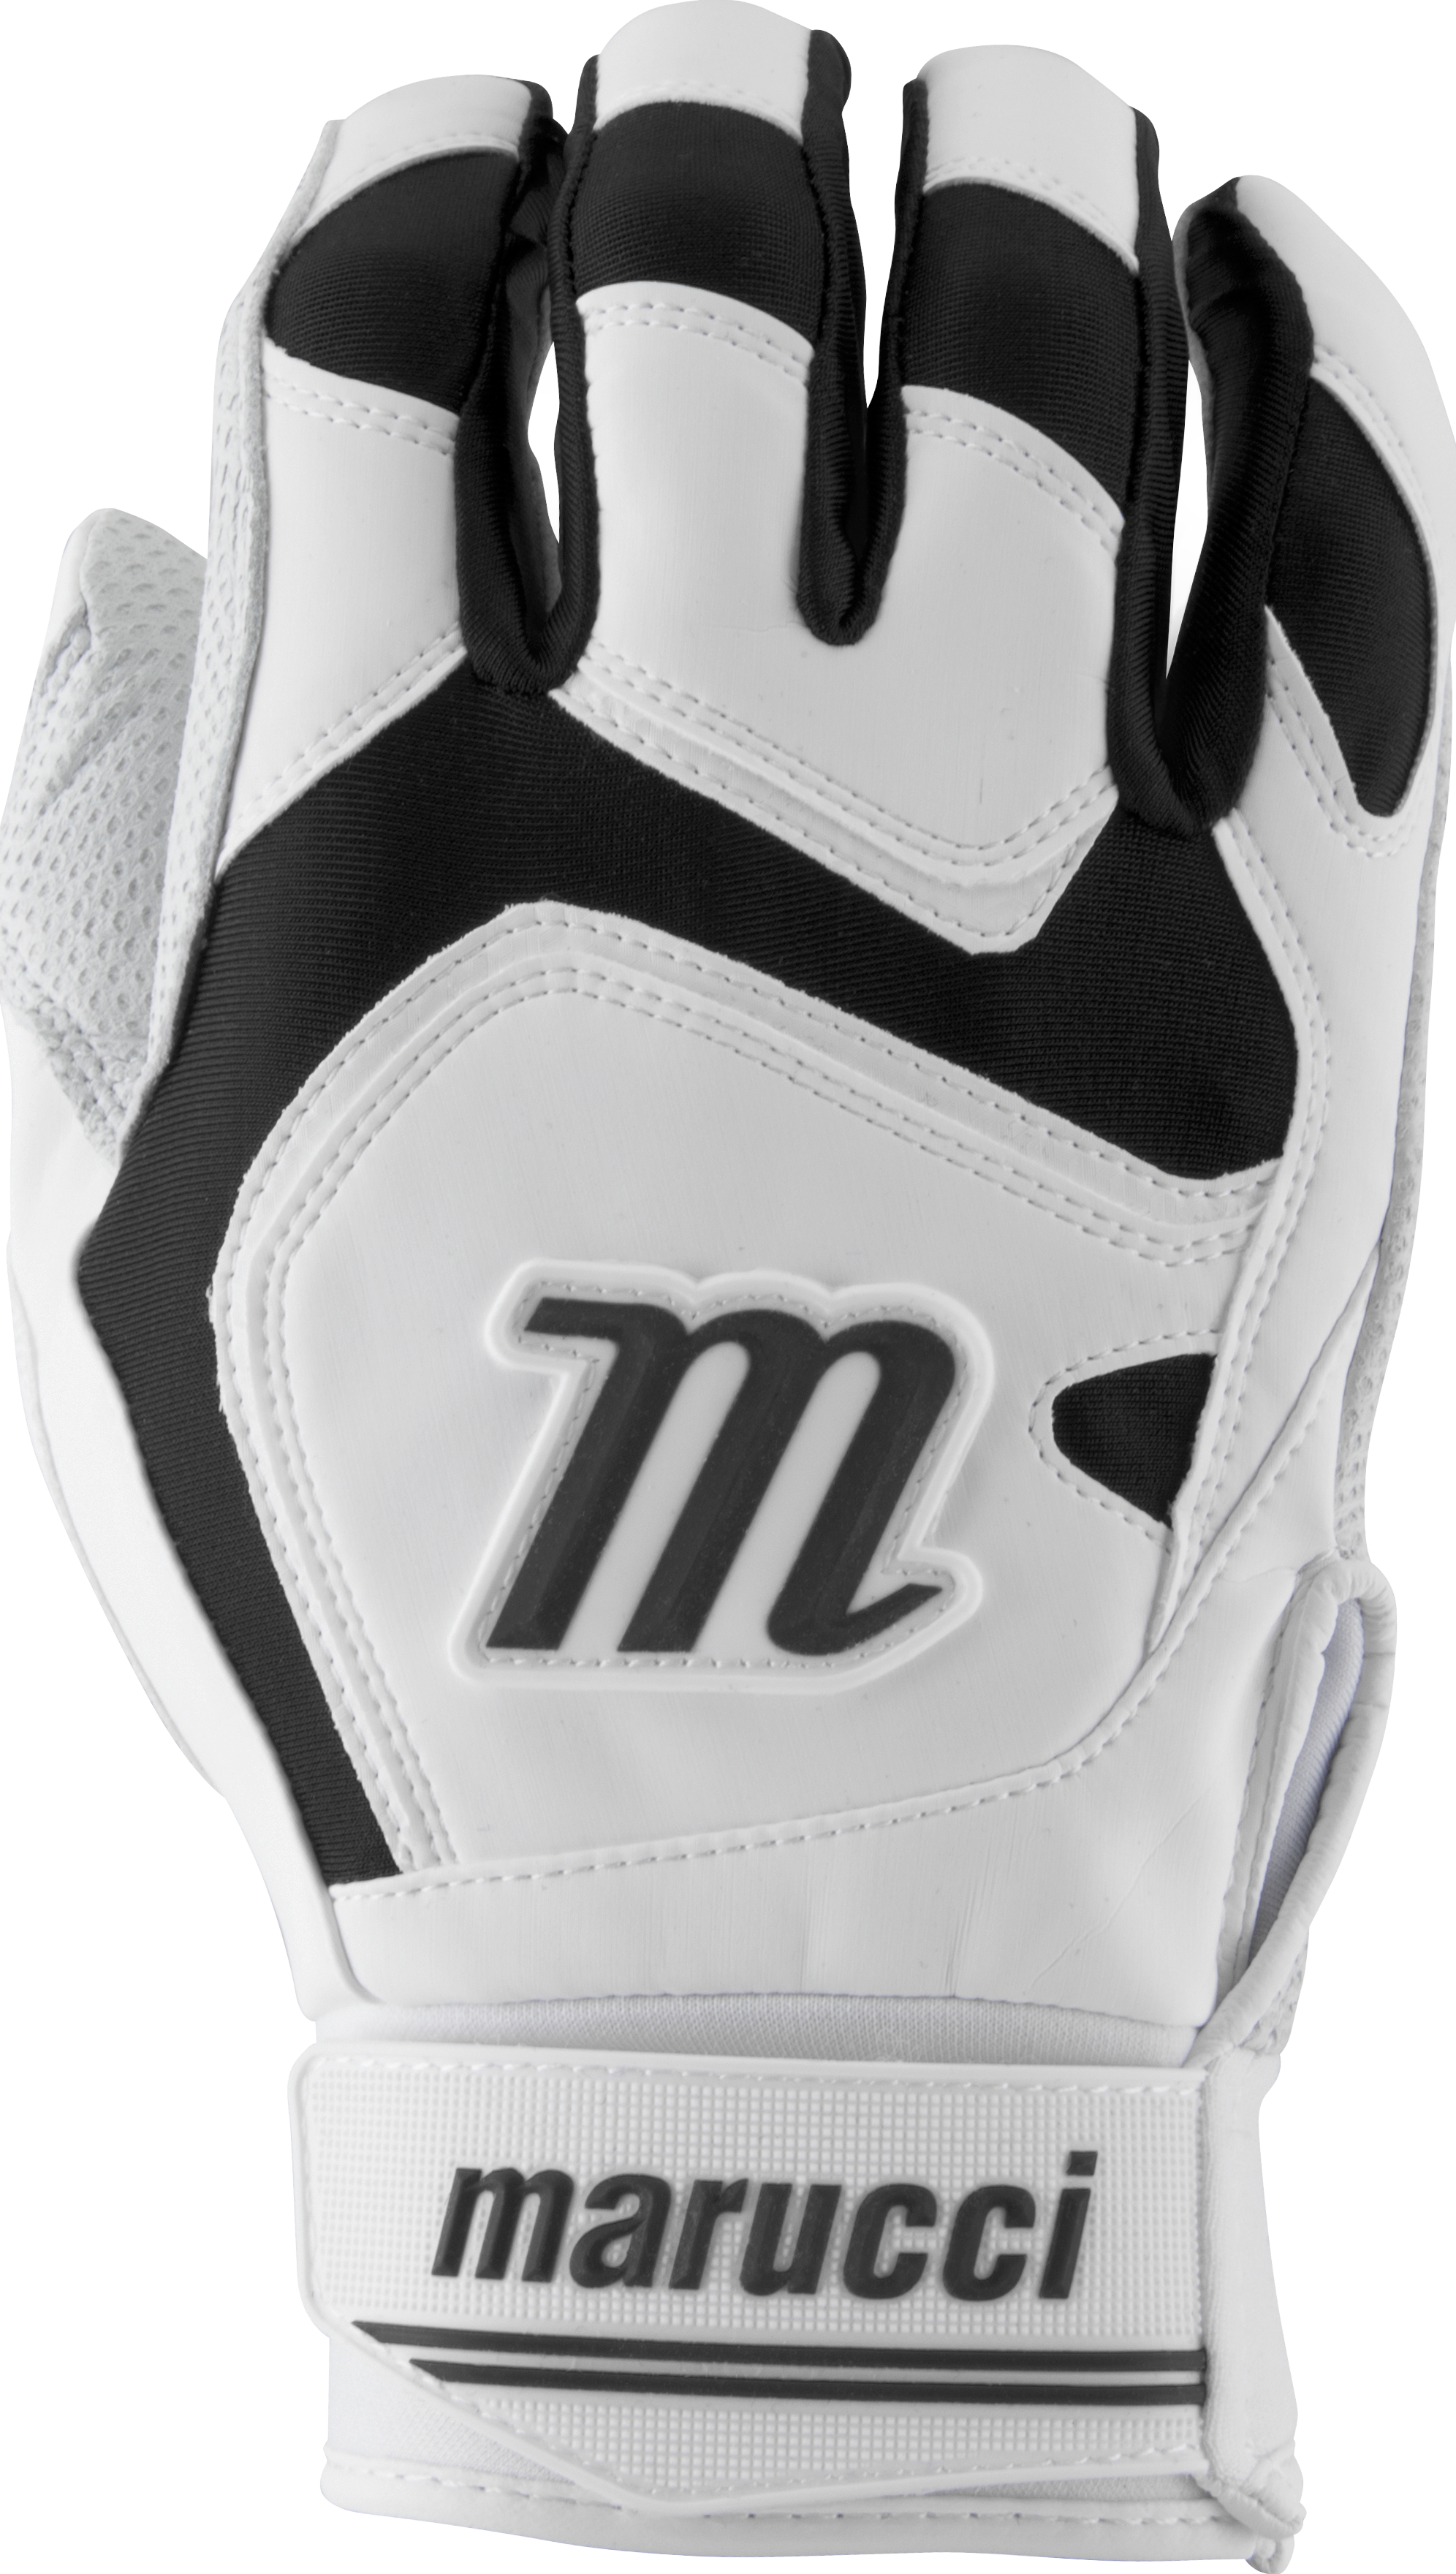 marucci-signature-batting-gloves-mbgsgn2-1-pair-white-black-adult-small MBGSGN2-WBK-AS Marucci 849817096604 2019 Model MBGSGN2-W/BK-AS Consistency And Craftsmanship Commitment To Quality And Understanding